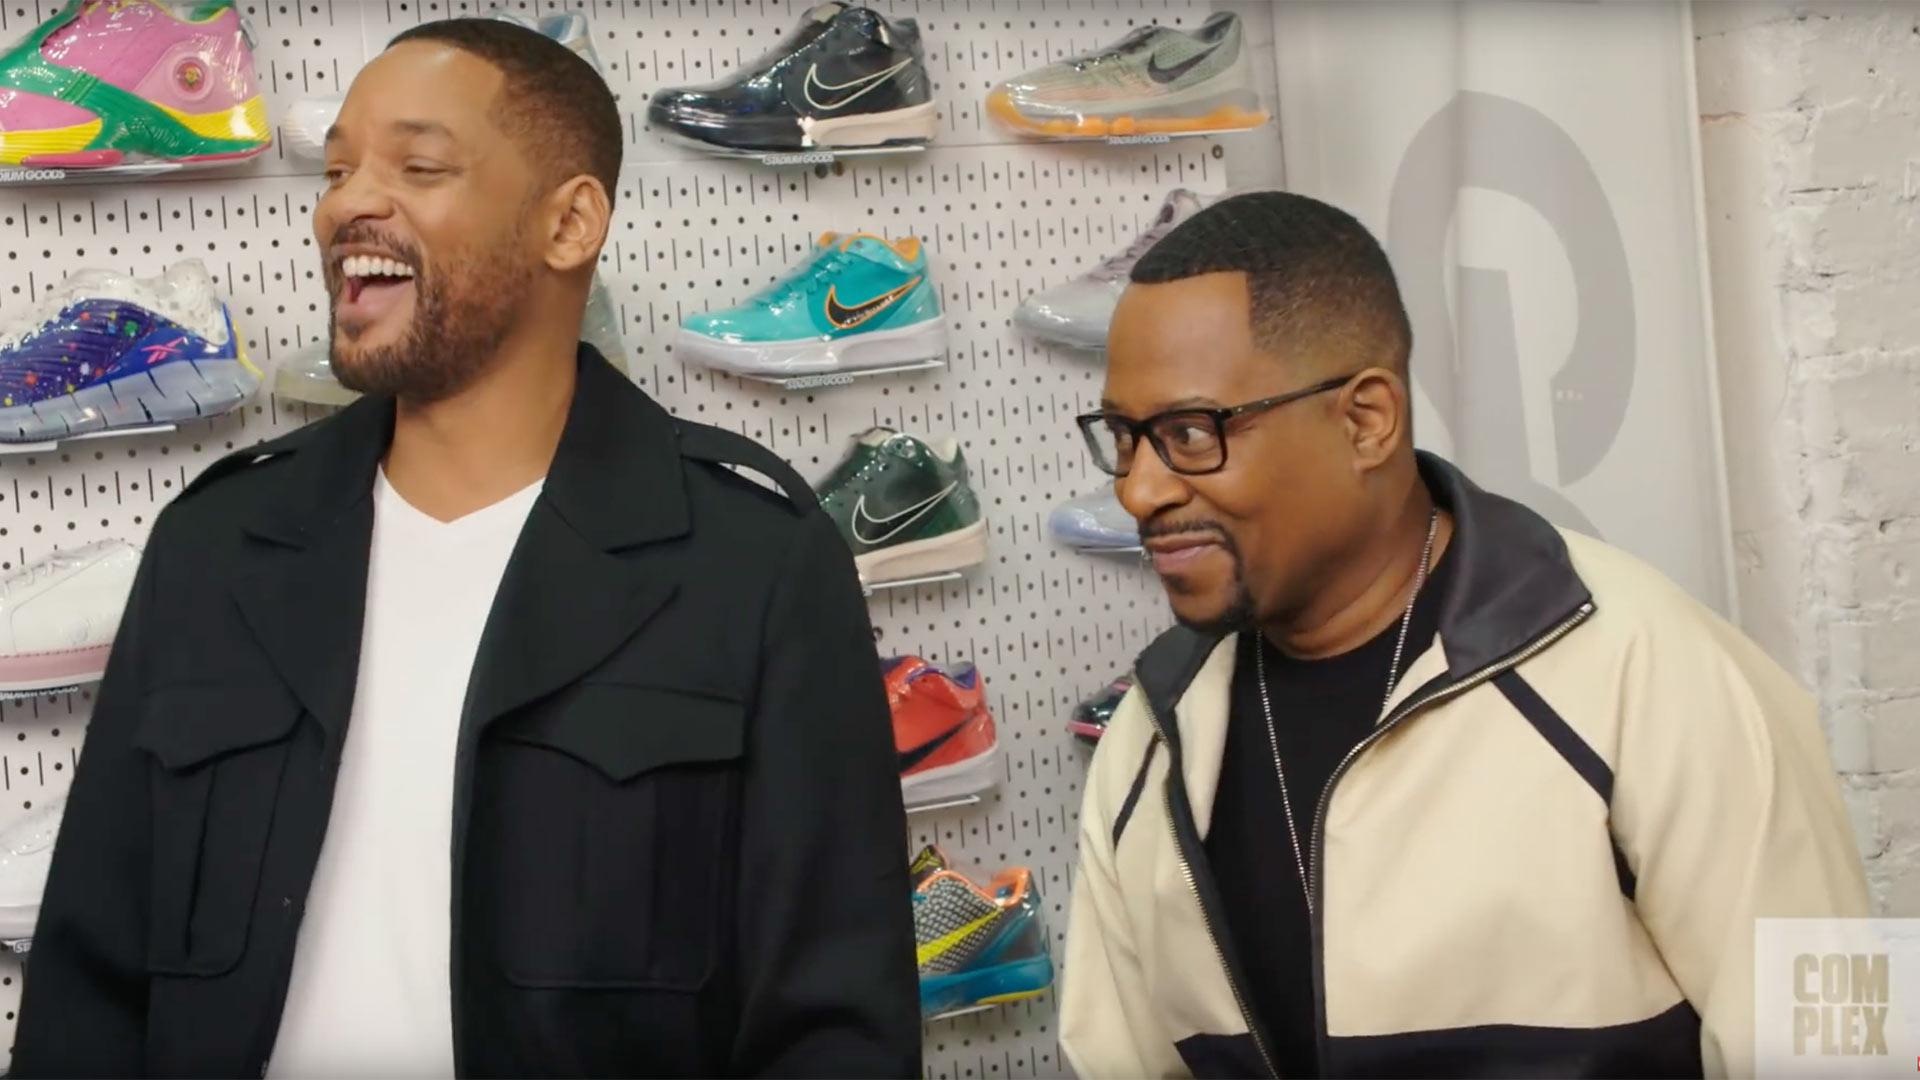 Sneaker Shopping with Will Smith and Martin Lawrence: Watch the Bad Boys Stars Spend $8,400!